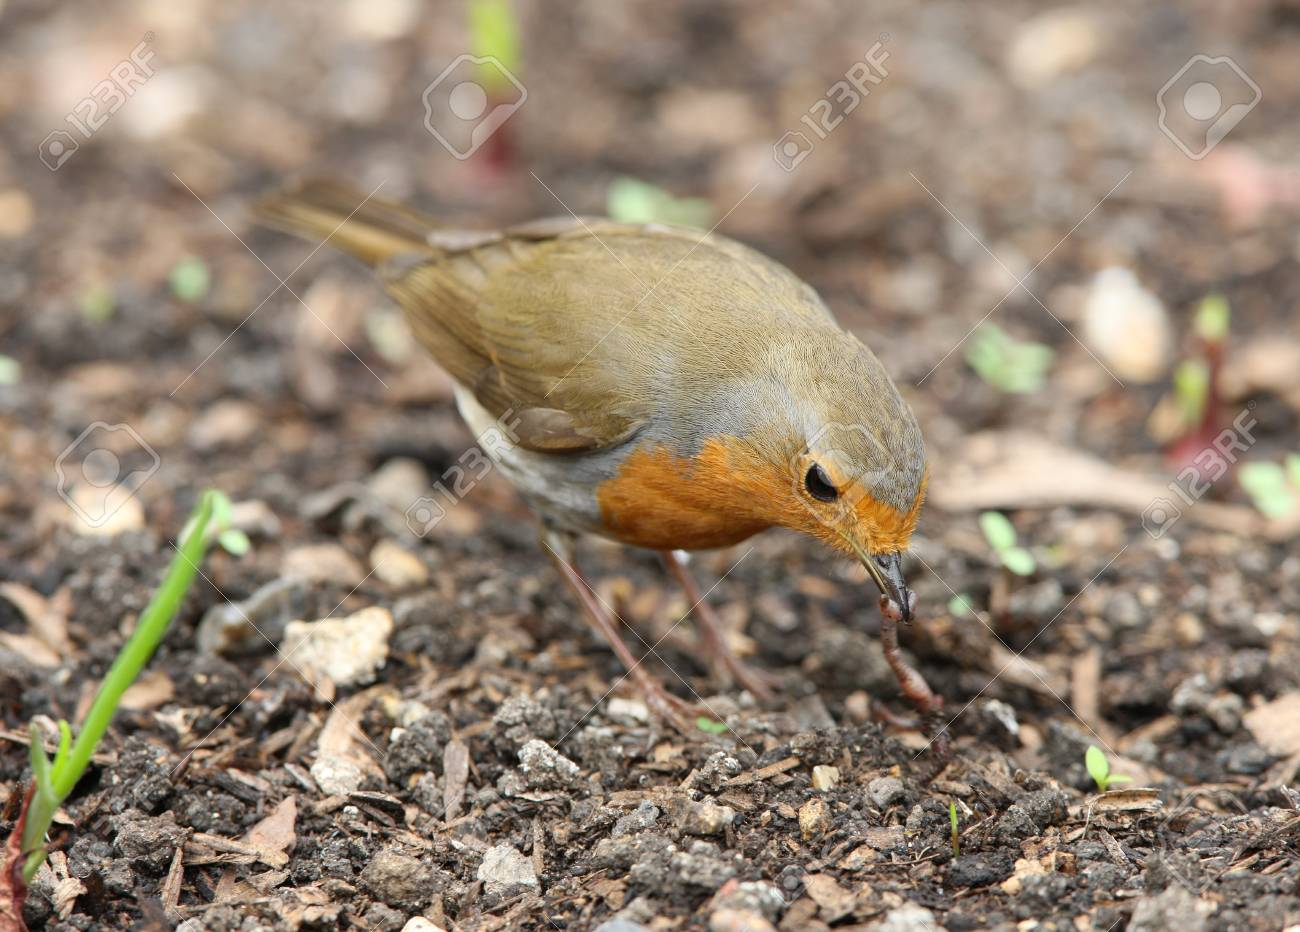 A Robin pulling up a worm Stock Photo - 9432716